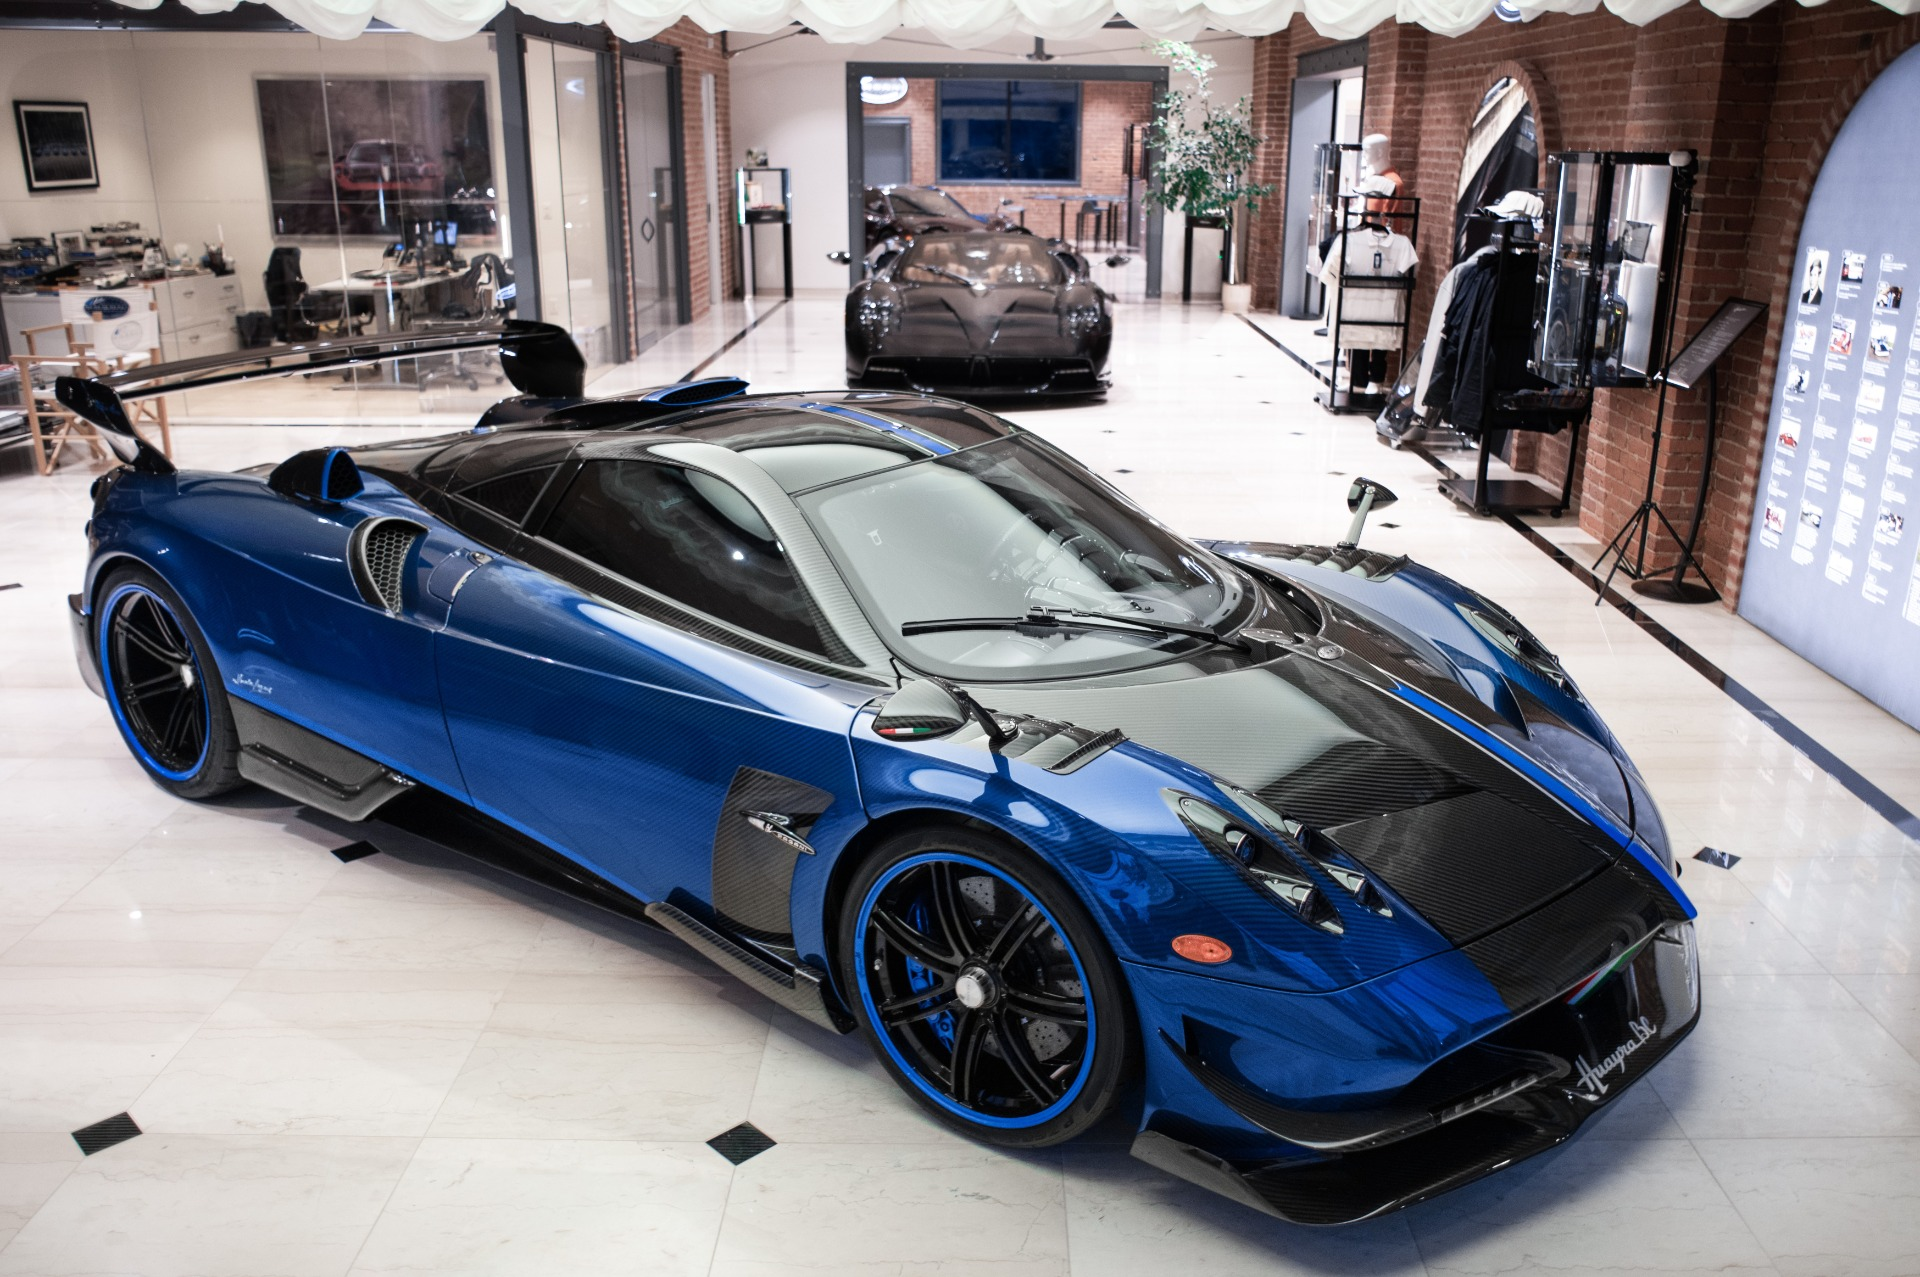 Used 2017 Pagani Huayra BC Macchina Volante for sale Call for price at Maserati of Westport in Westport CT 06880 1